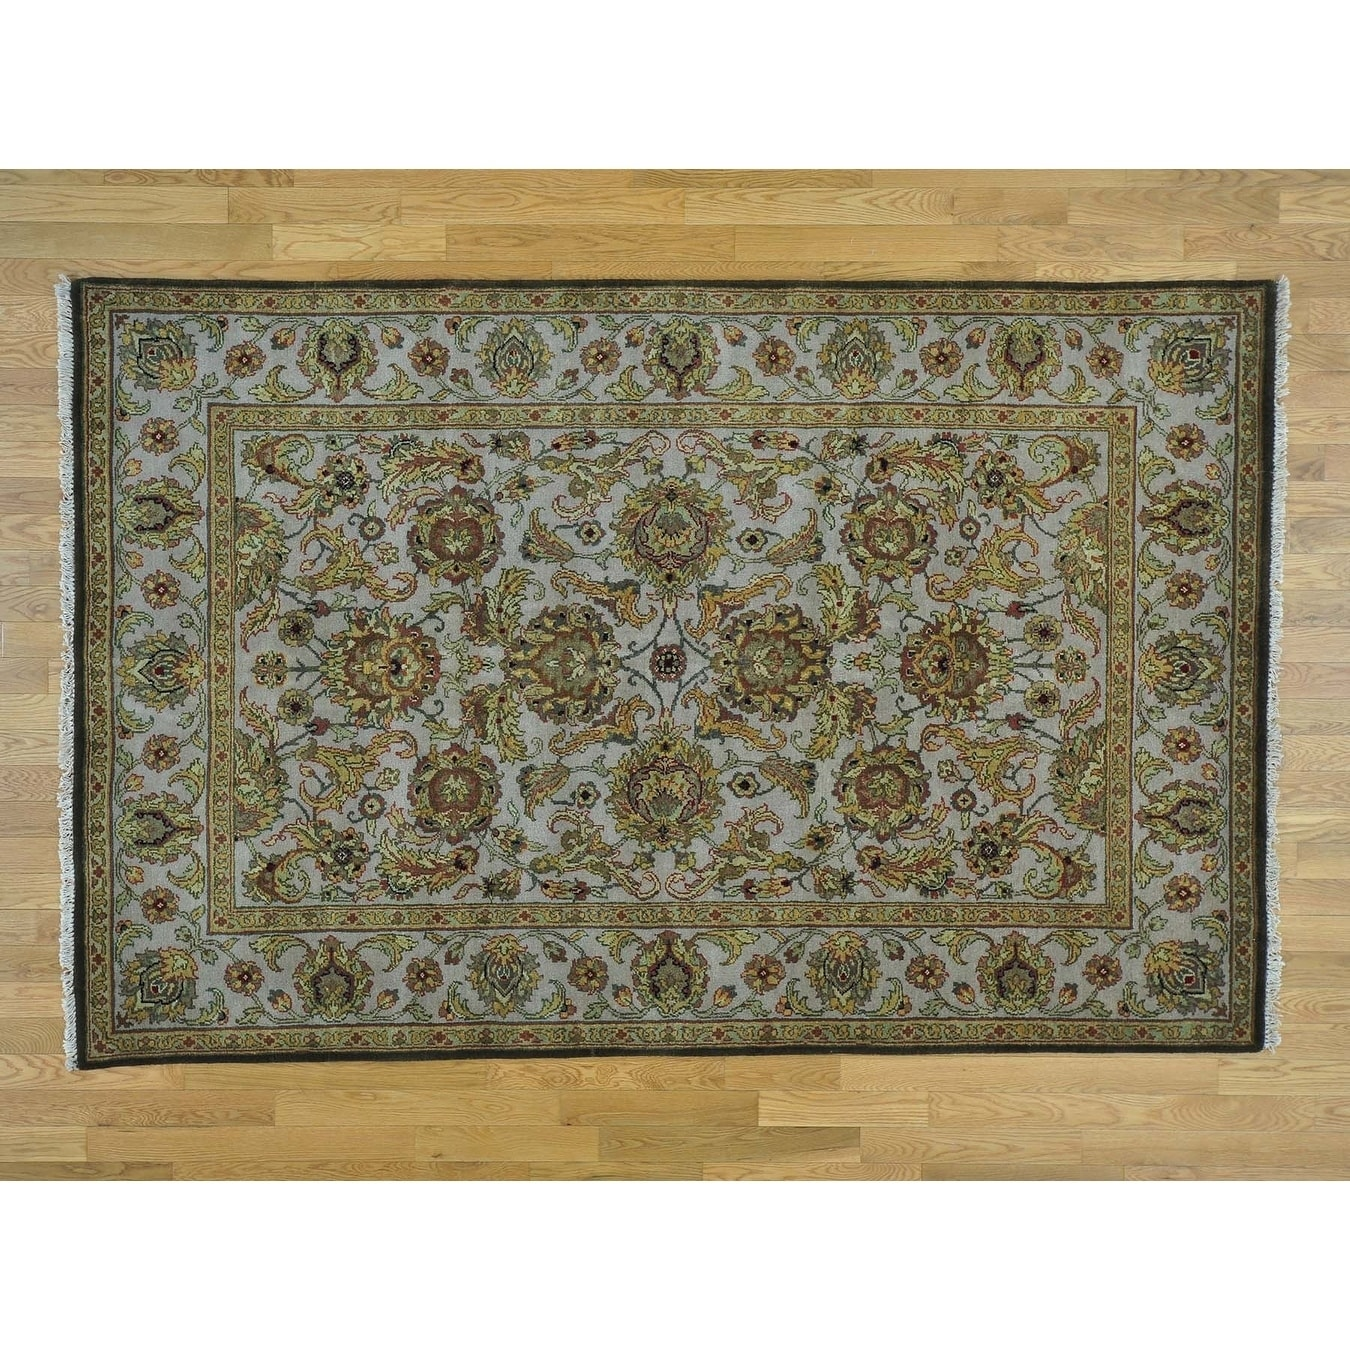 Hand Knotted Grey Rajasthan with Wool Oriental Rug - 59 x 9